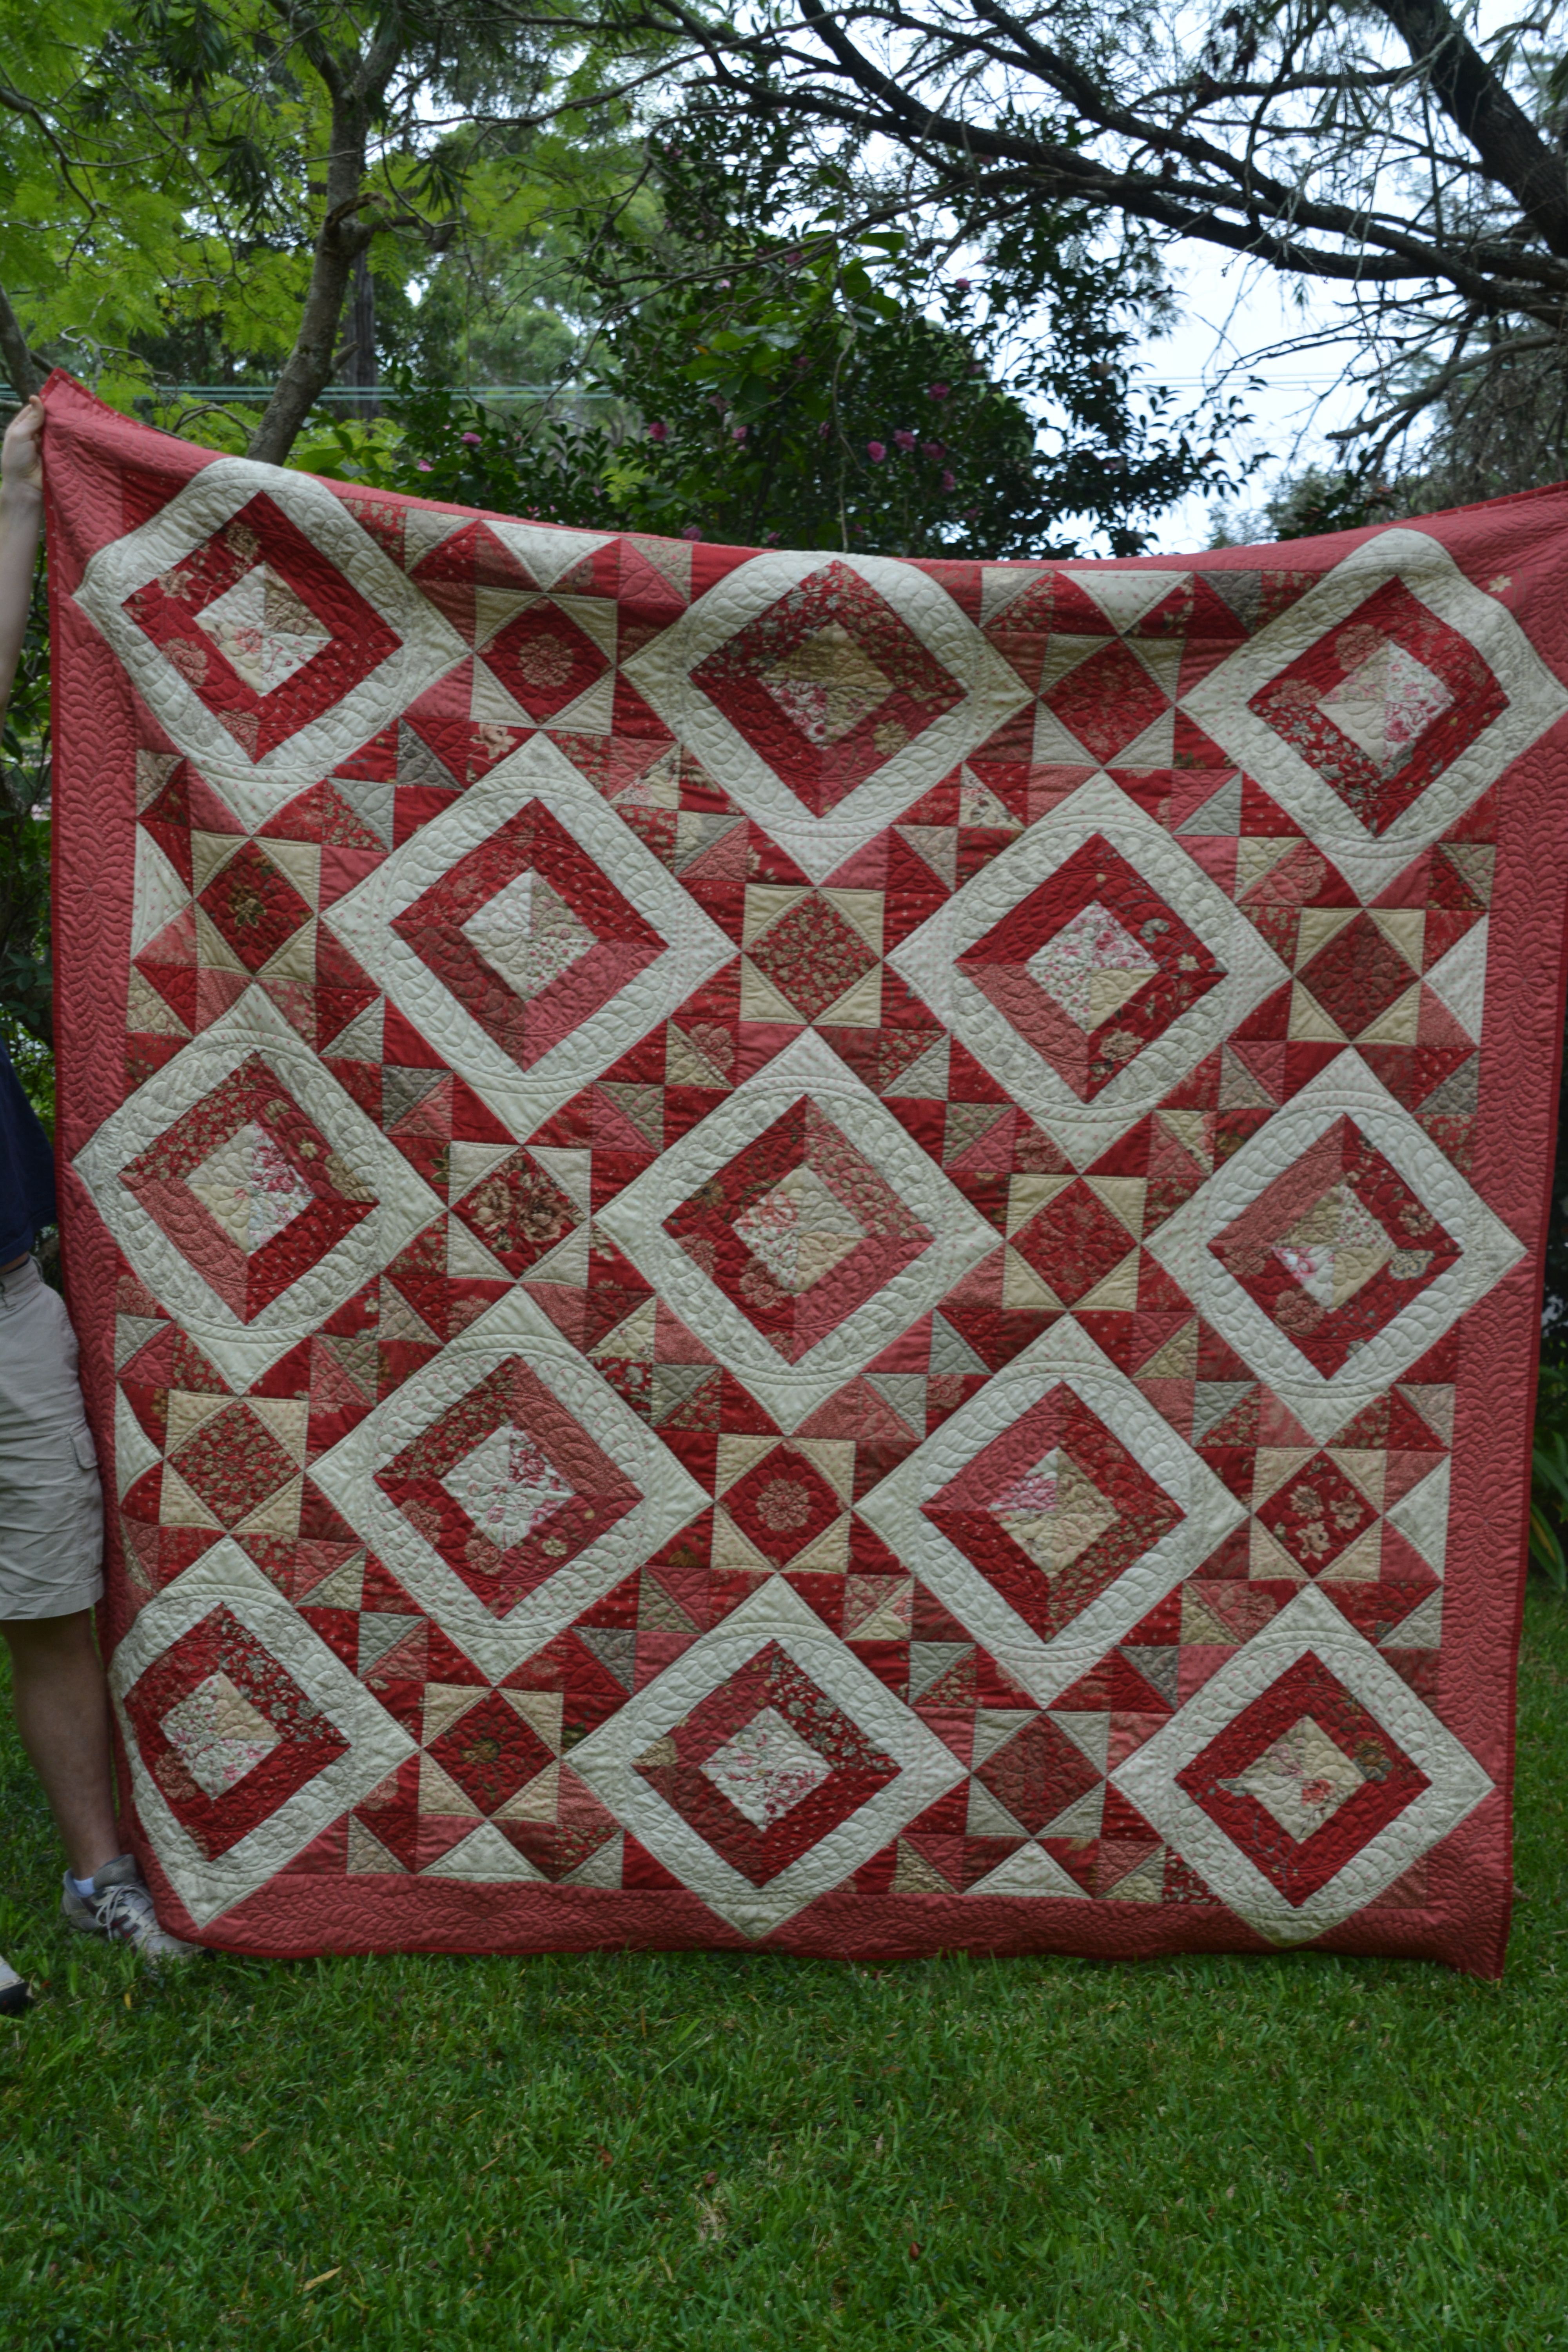 French Kisses quilt pattern by traceyjay quilts using French General Rouennieres Deux fabric. 2.4M square